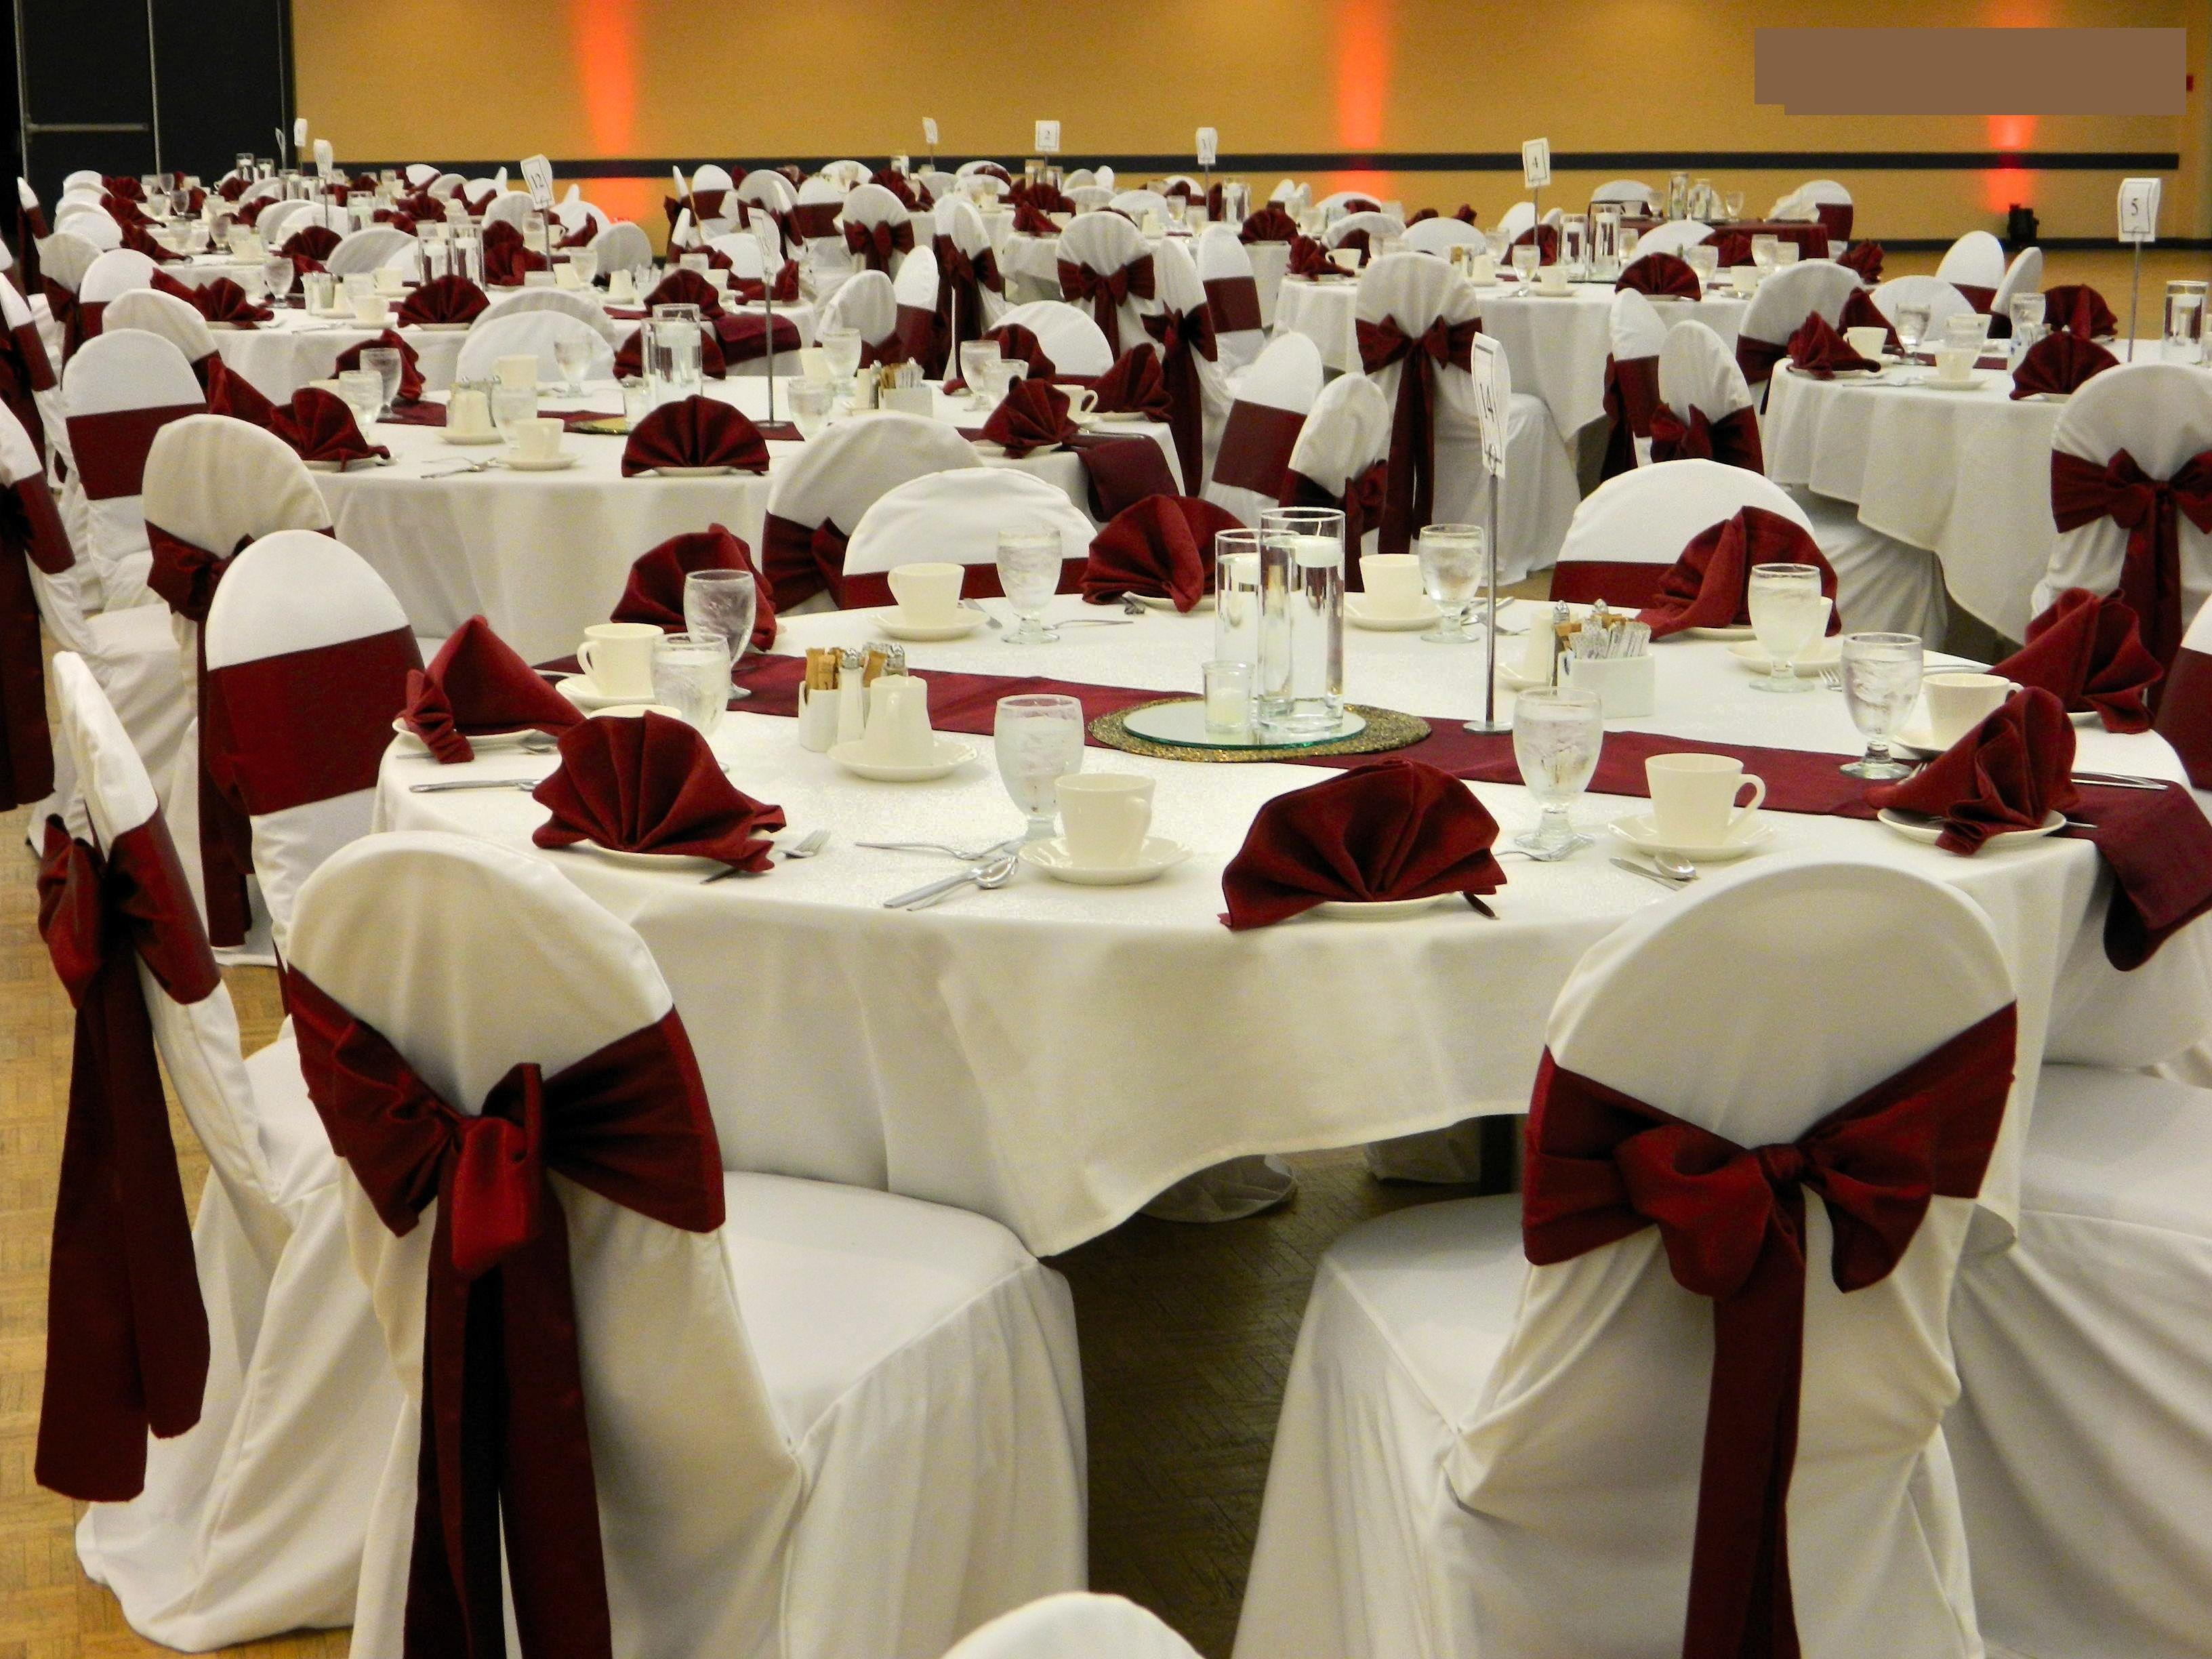 Ivory Linen Chair Covers With Burgundy Satin Sashes Tied In An